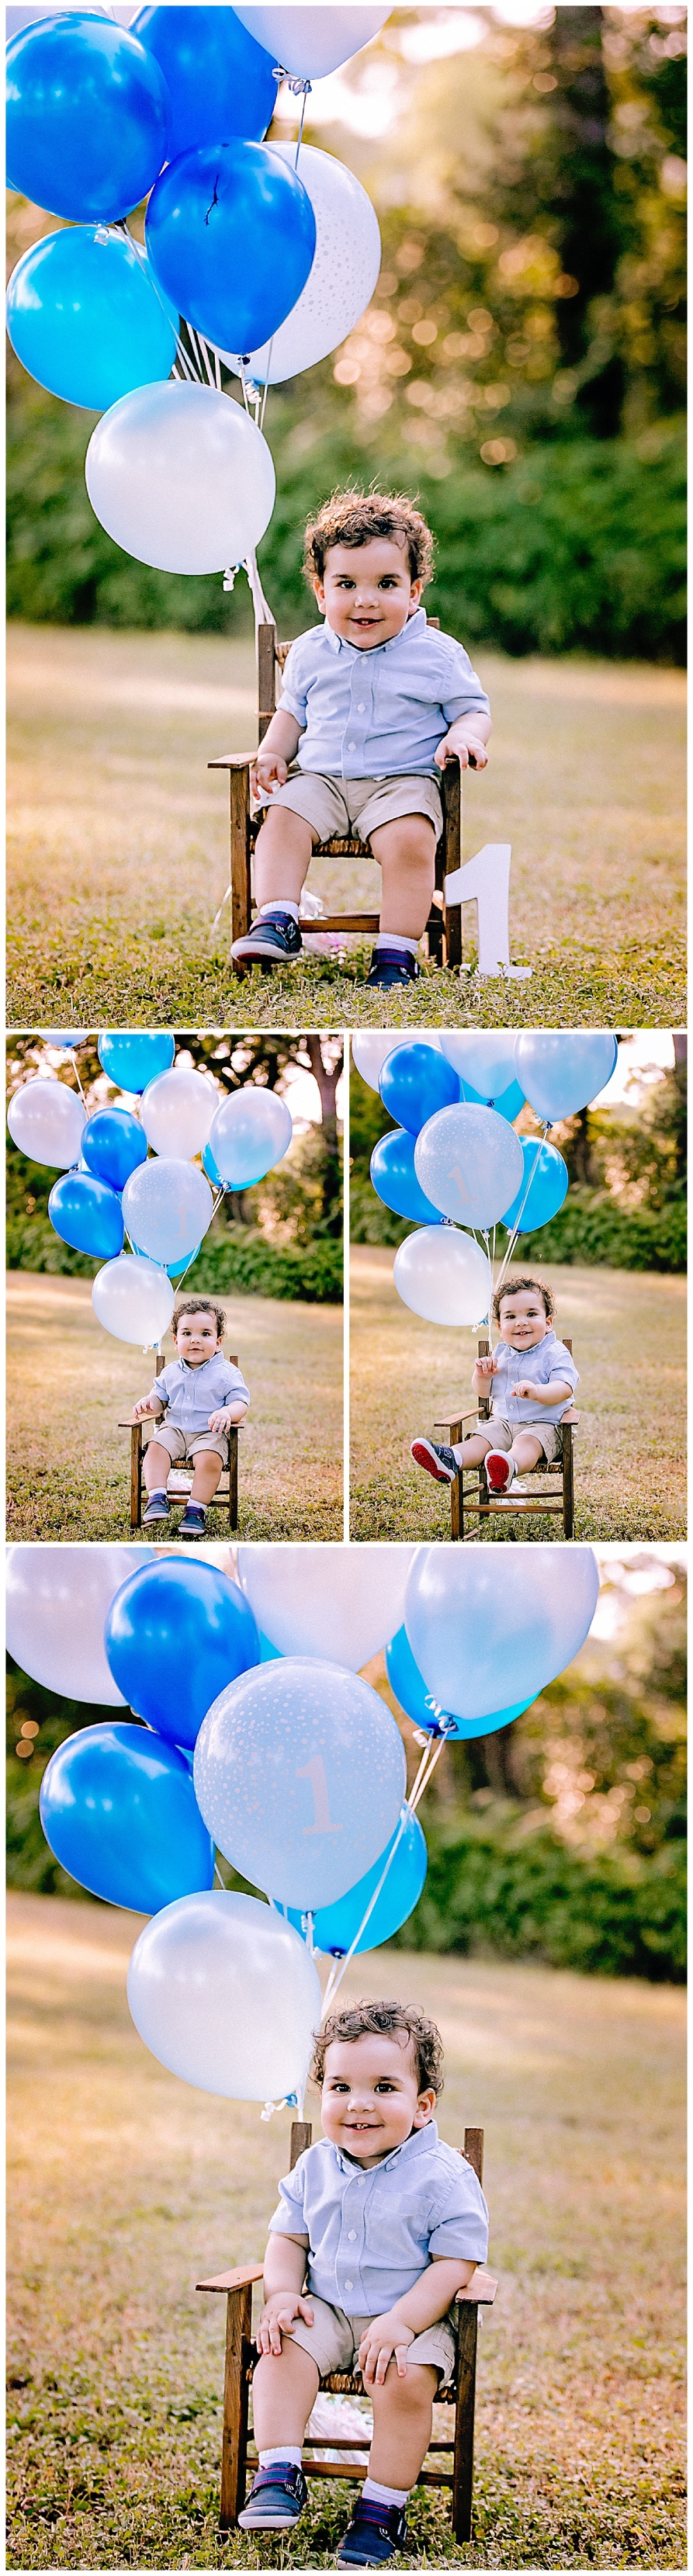 Carly-Barton-Photography-Birthday-Session-Schertz-Texas-Veterans-Park-1-year-family-photos-James_0003.jpg